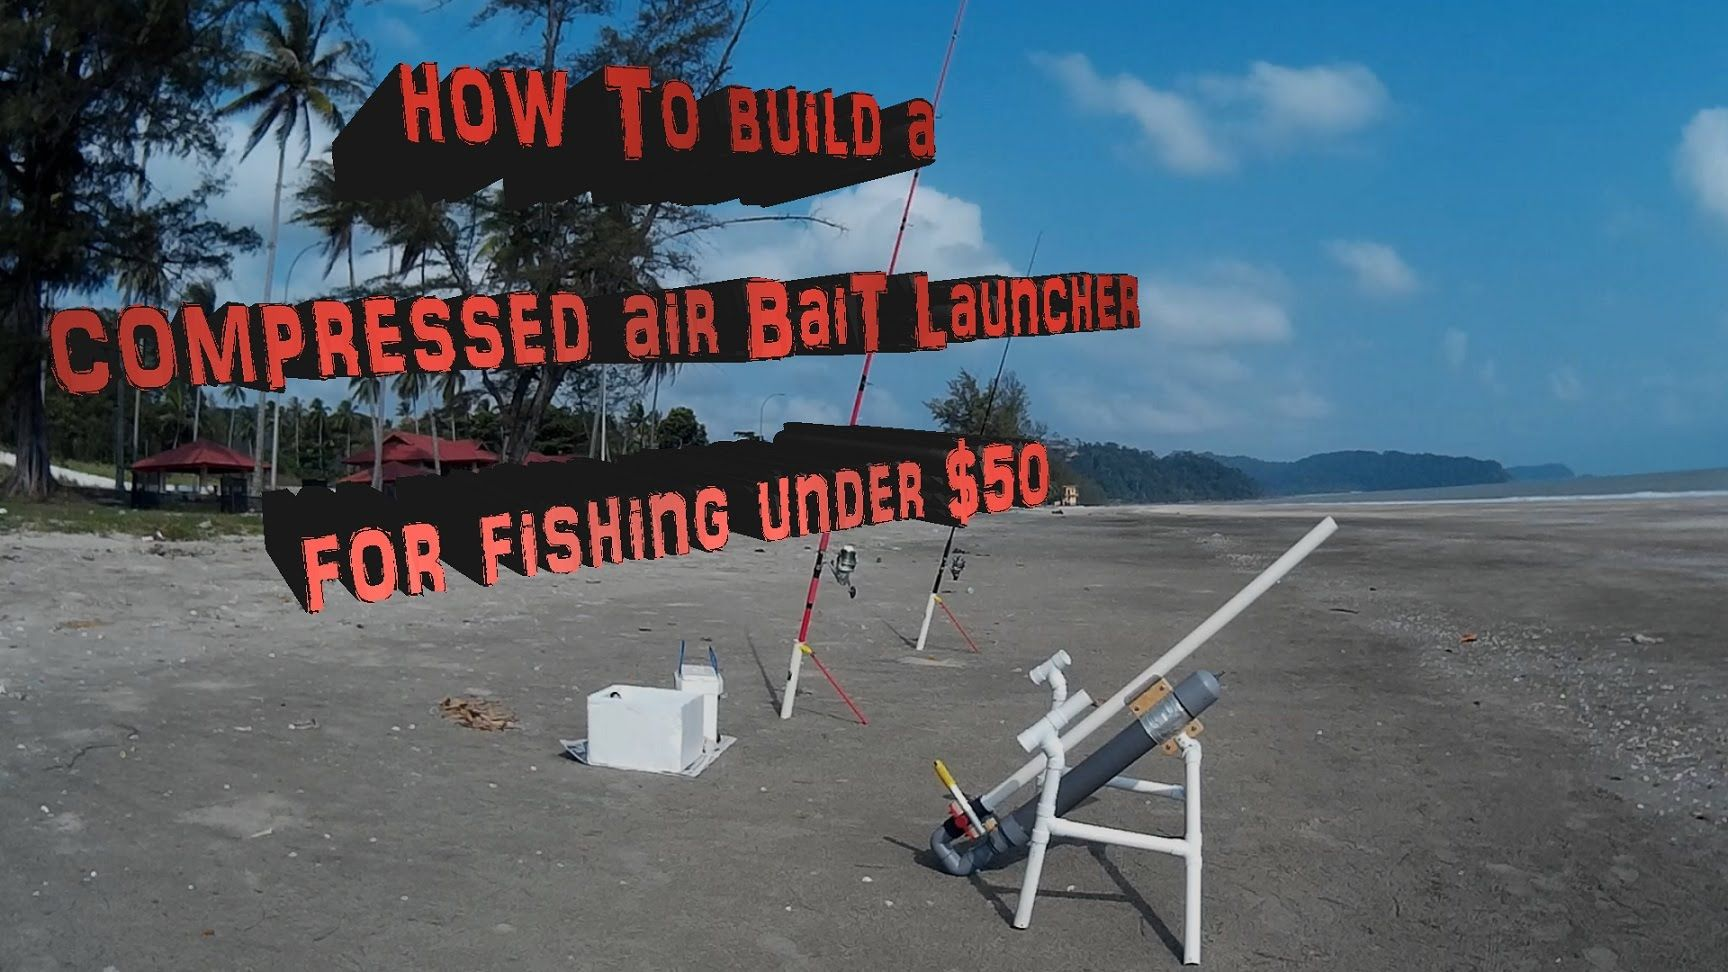 How to build a compressed air bait launcher for fishing for Fishing youtube channels